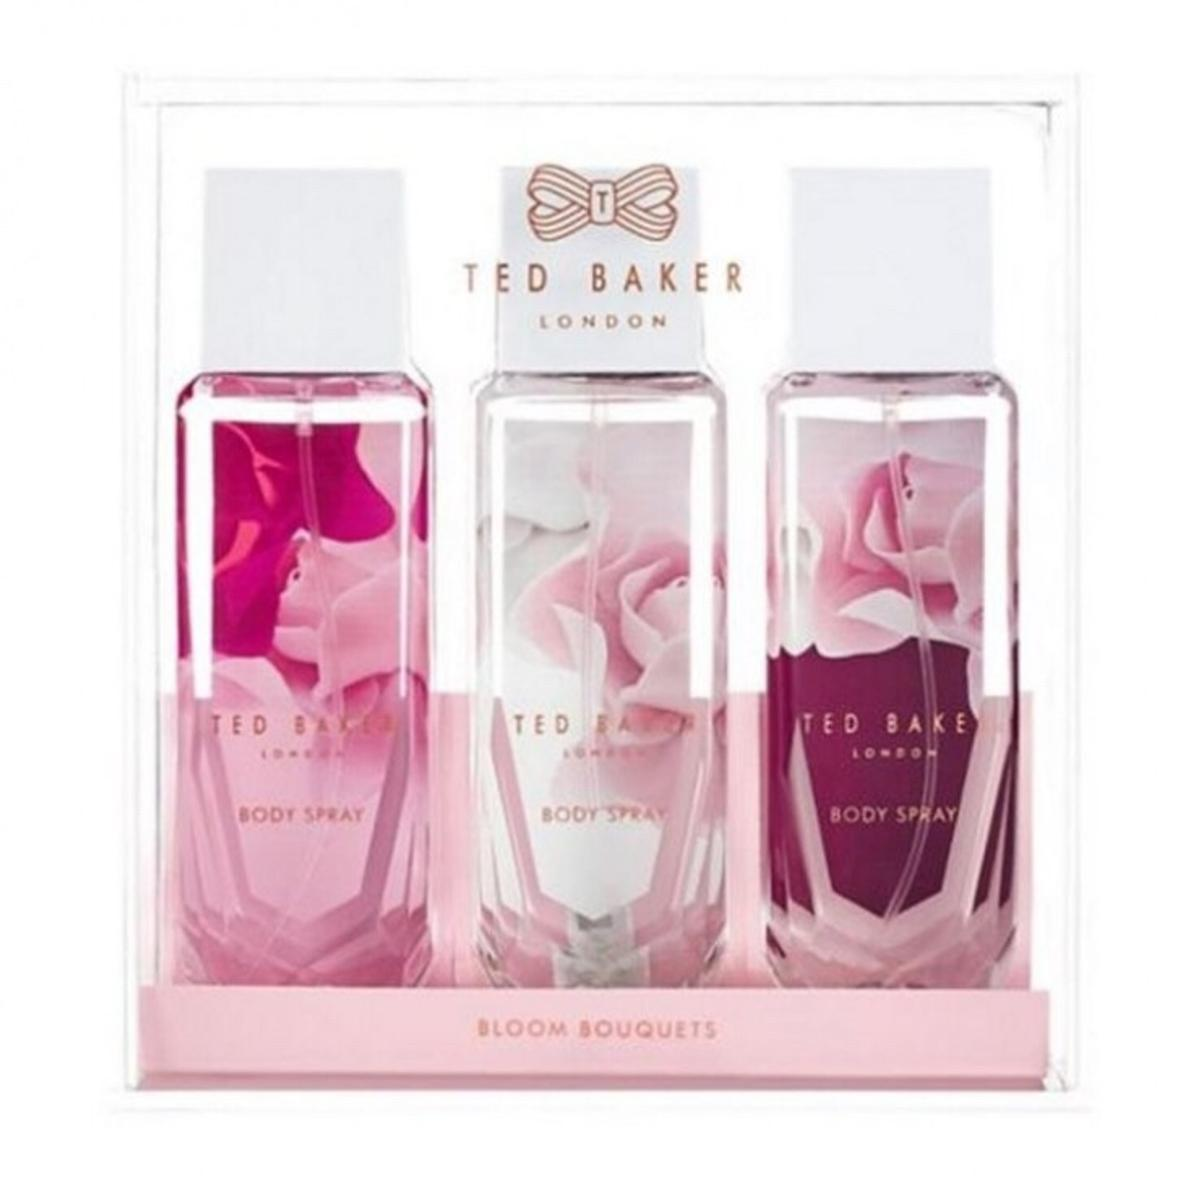 Ted Baker perfume gift set in NN2